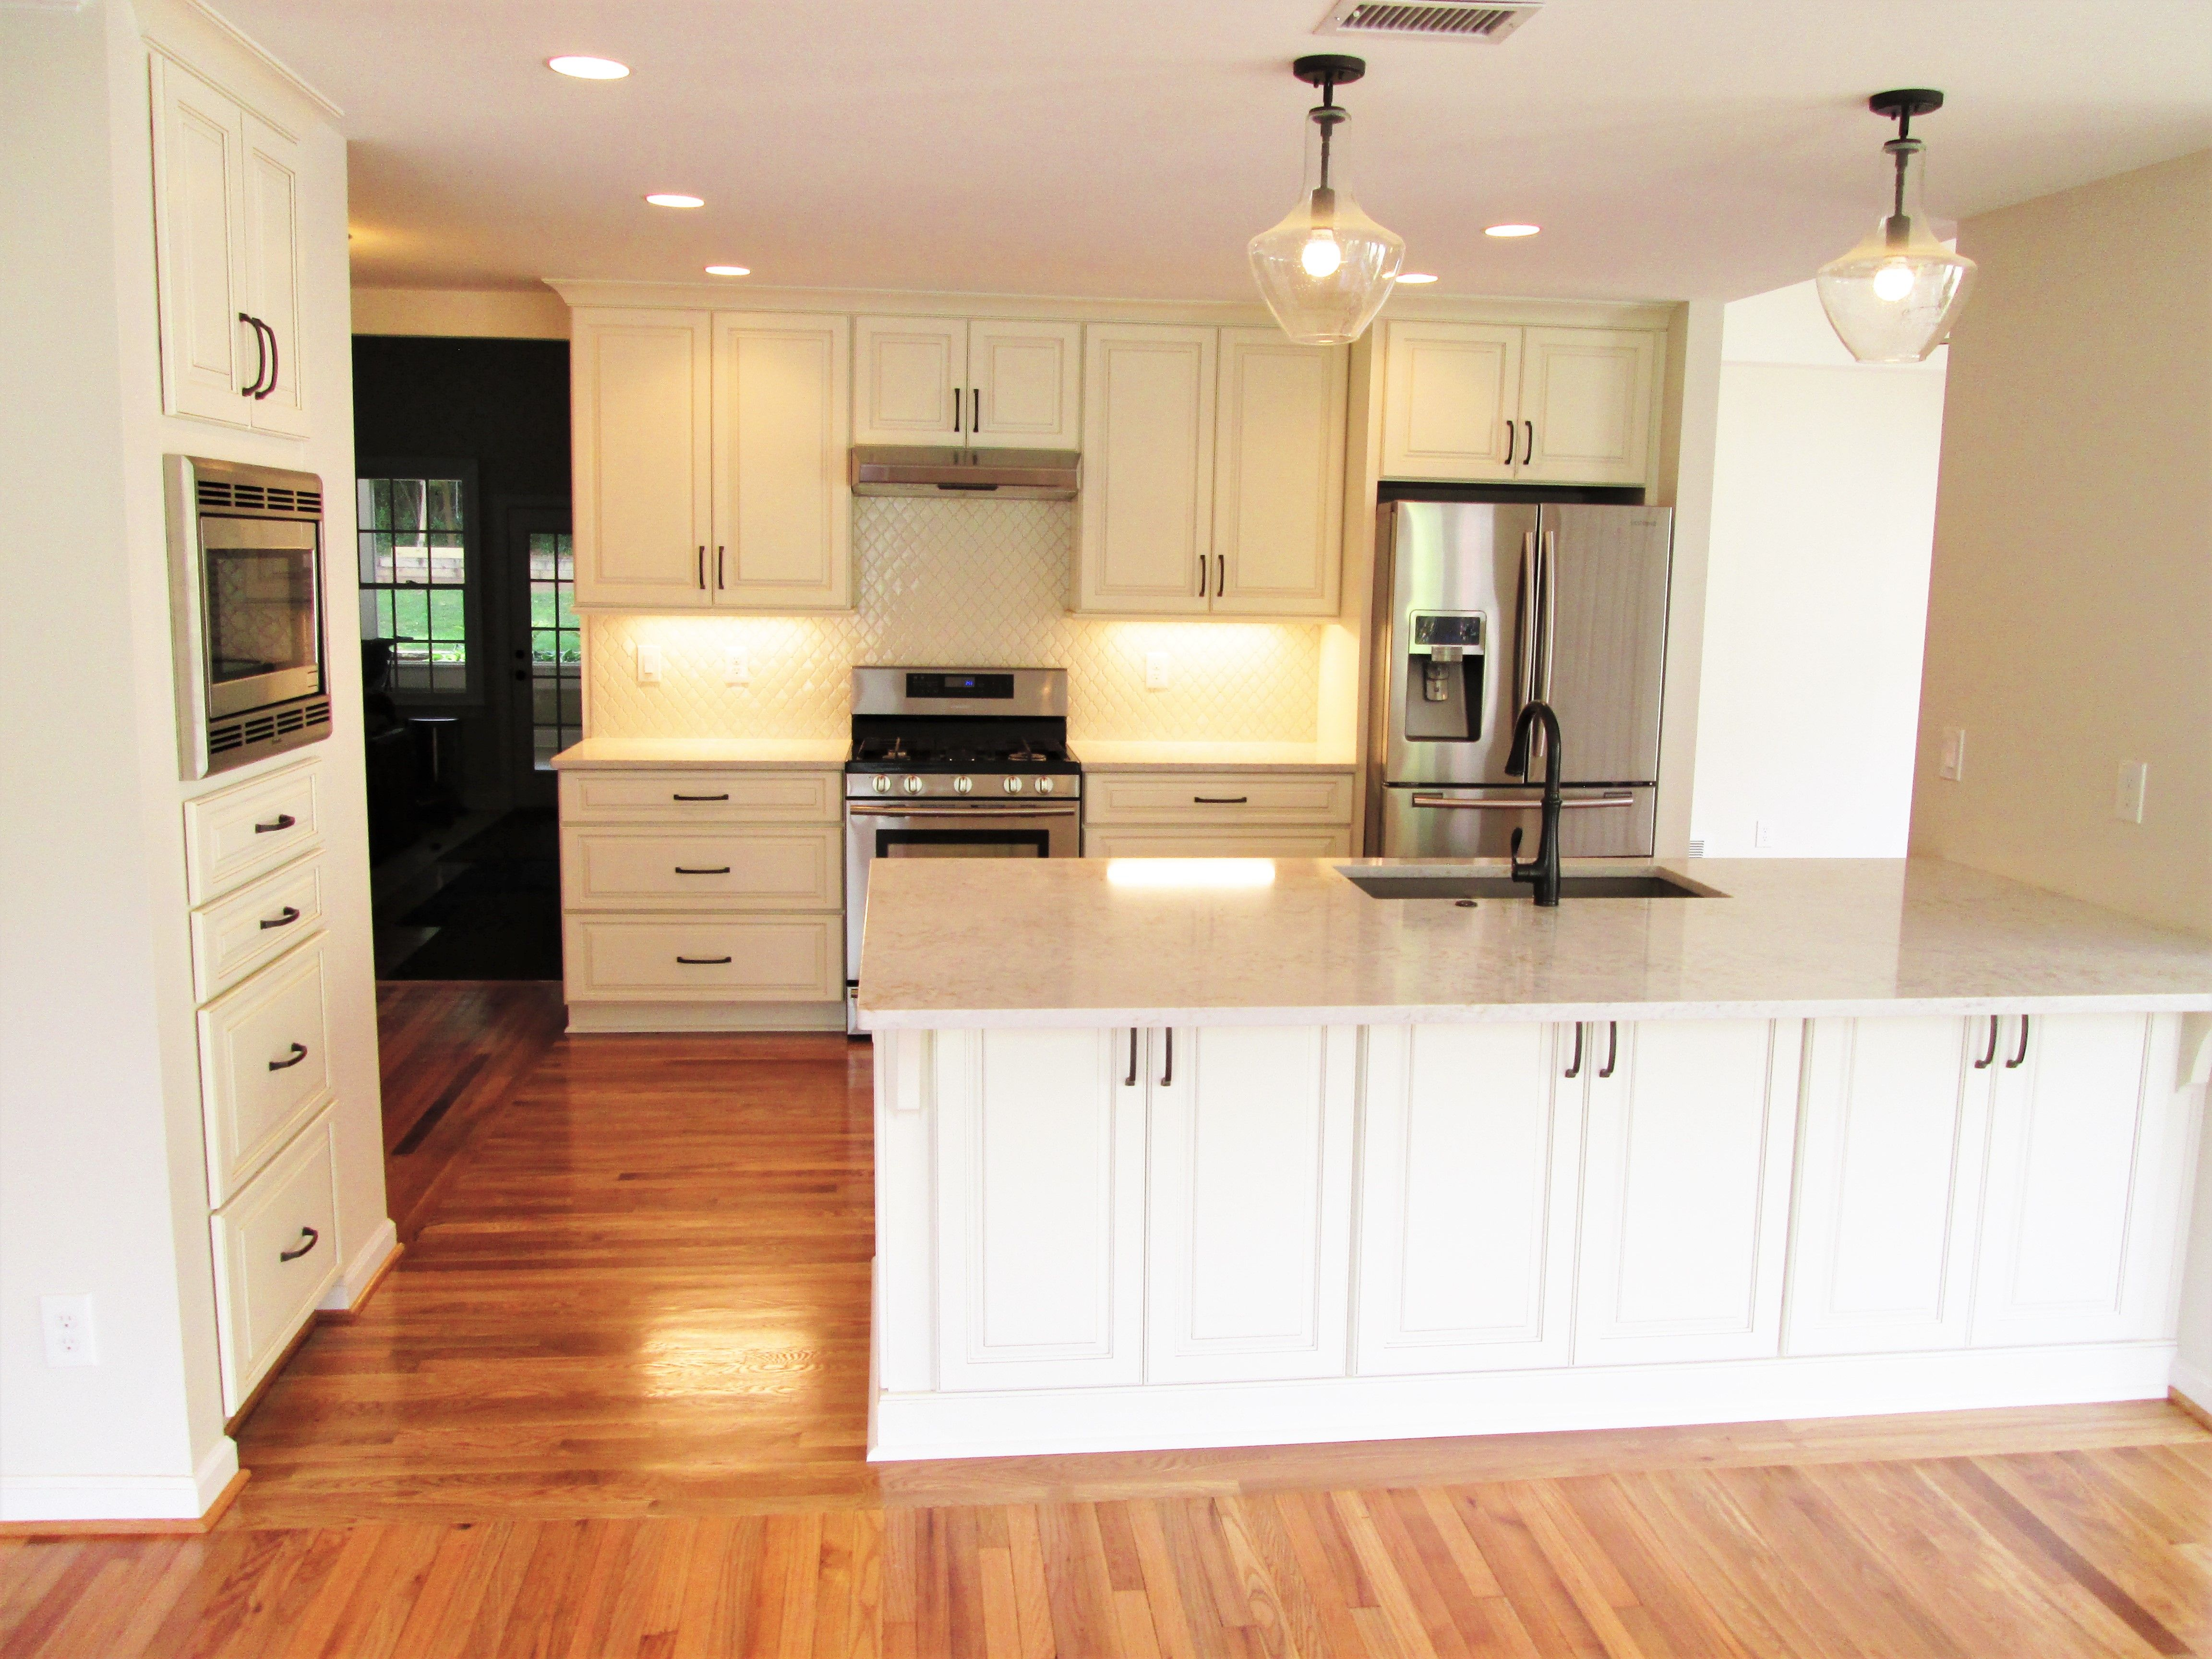 Kitchen renovation by penn carpentry atlanta general contractor